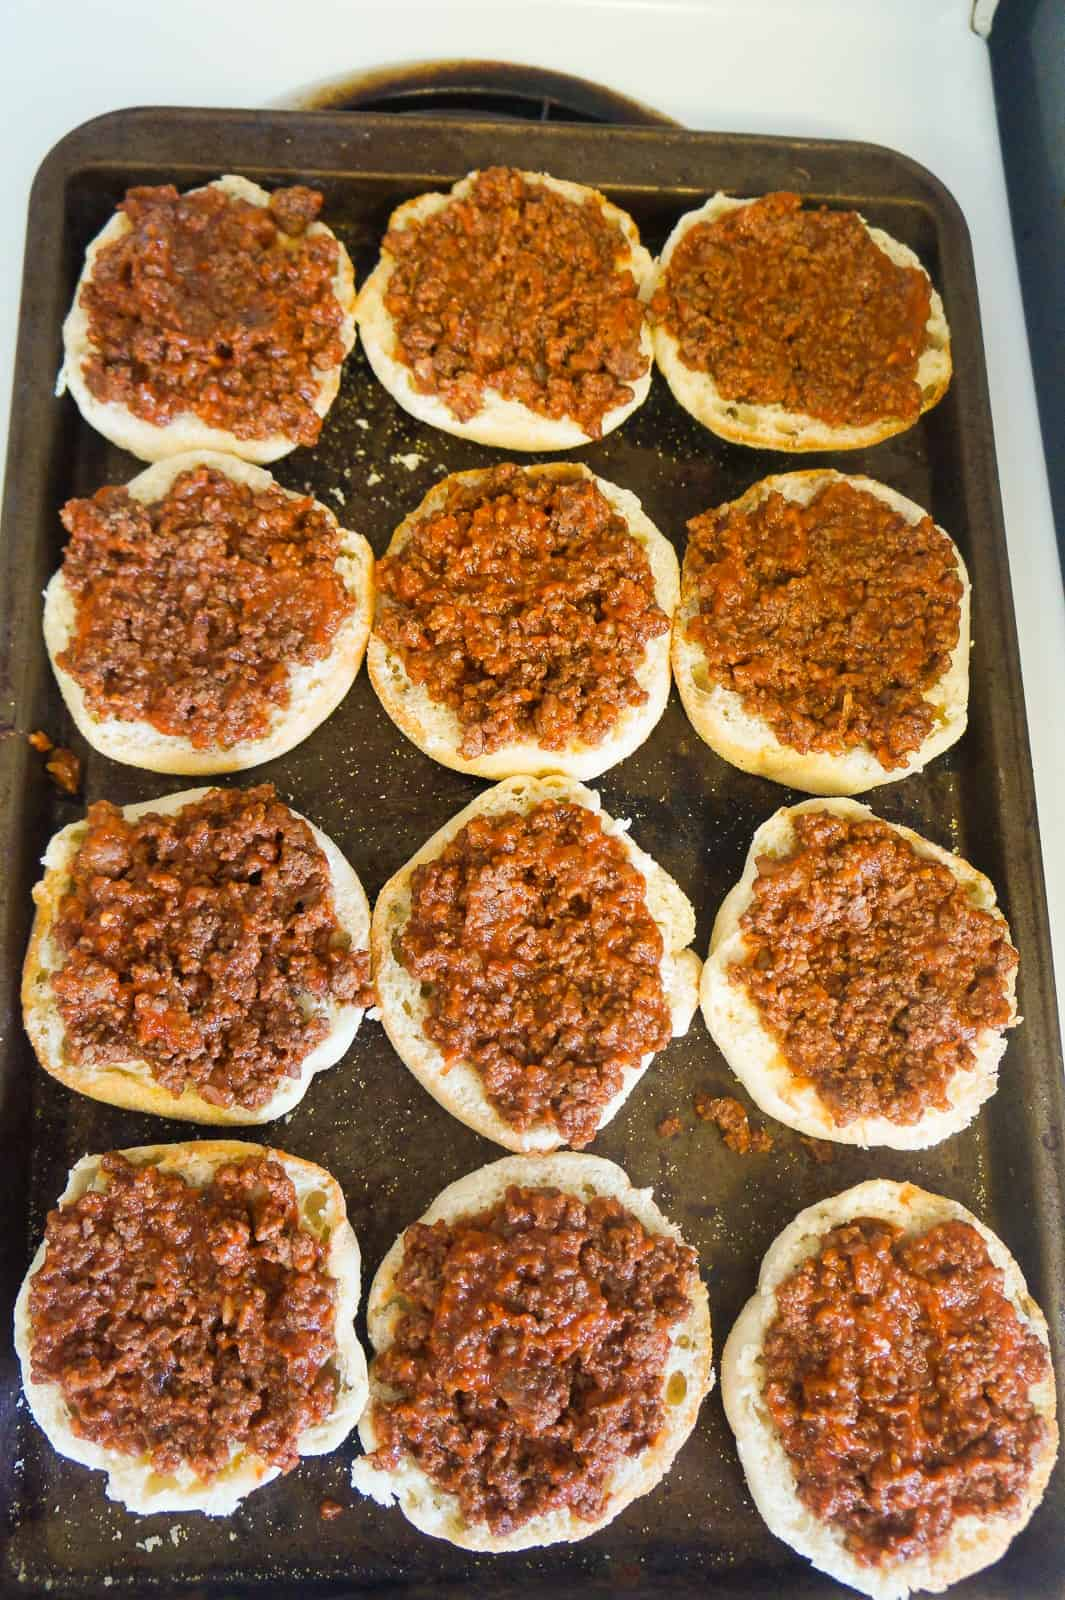 ground beef and pizza sauce on english muffins